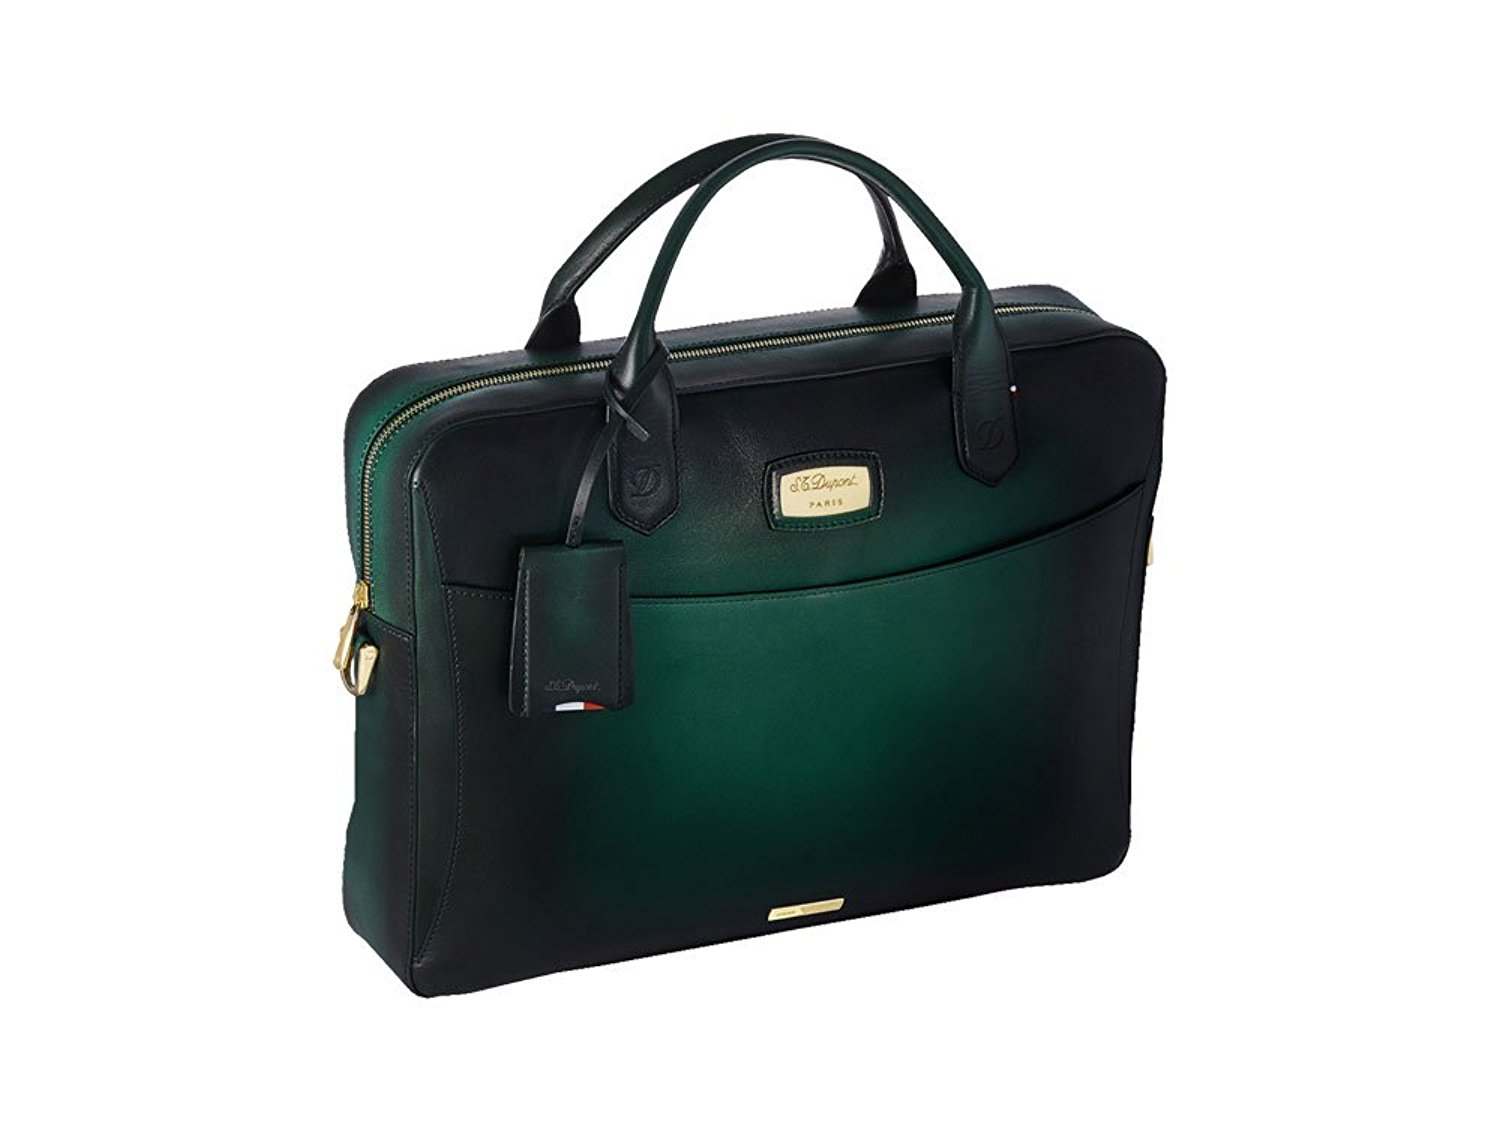 S.T. Dupont Atelier Emerald Document case, Leather, Green, Zip, 191231